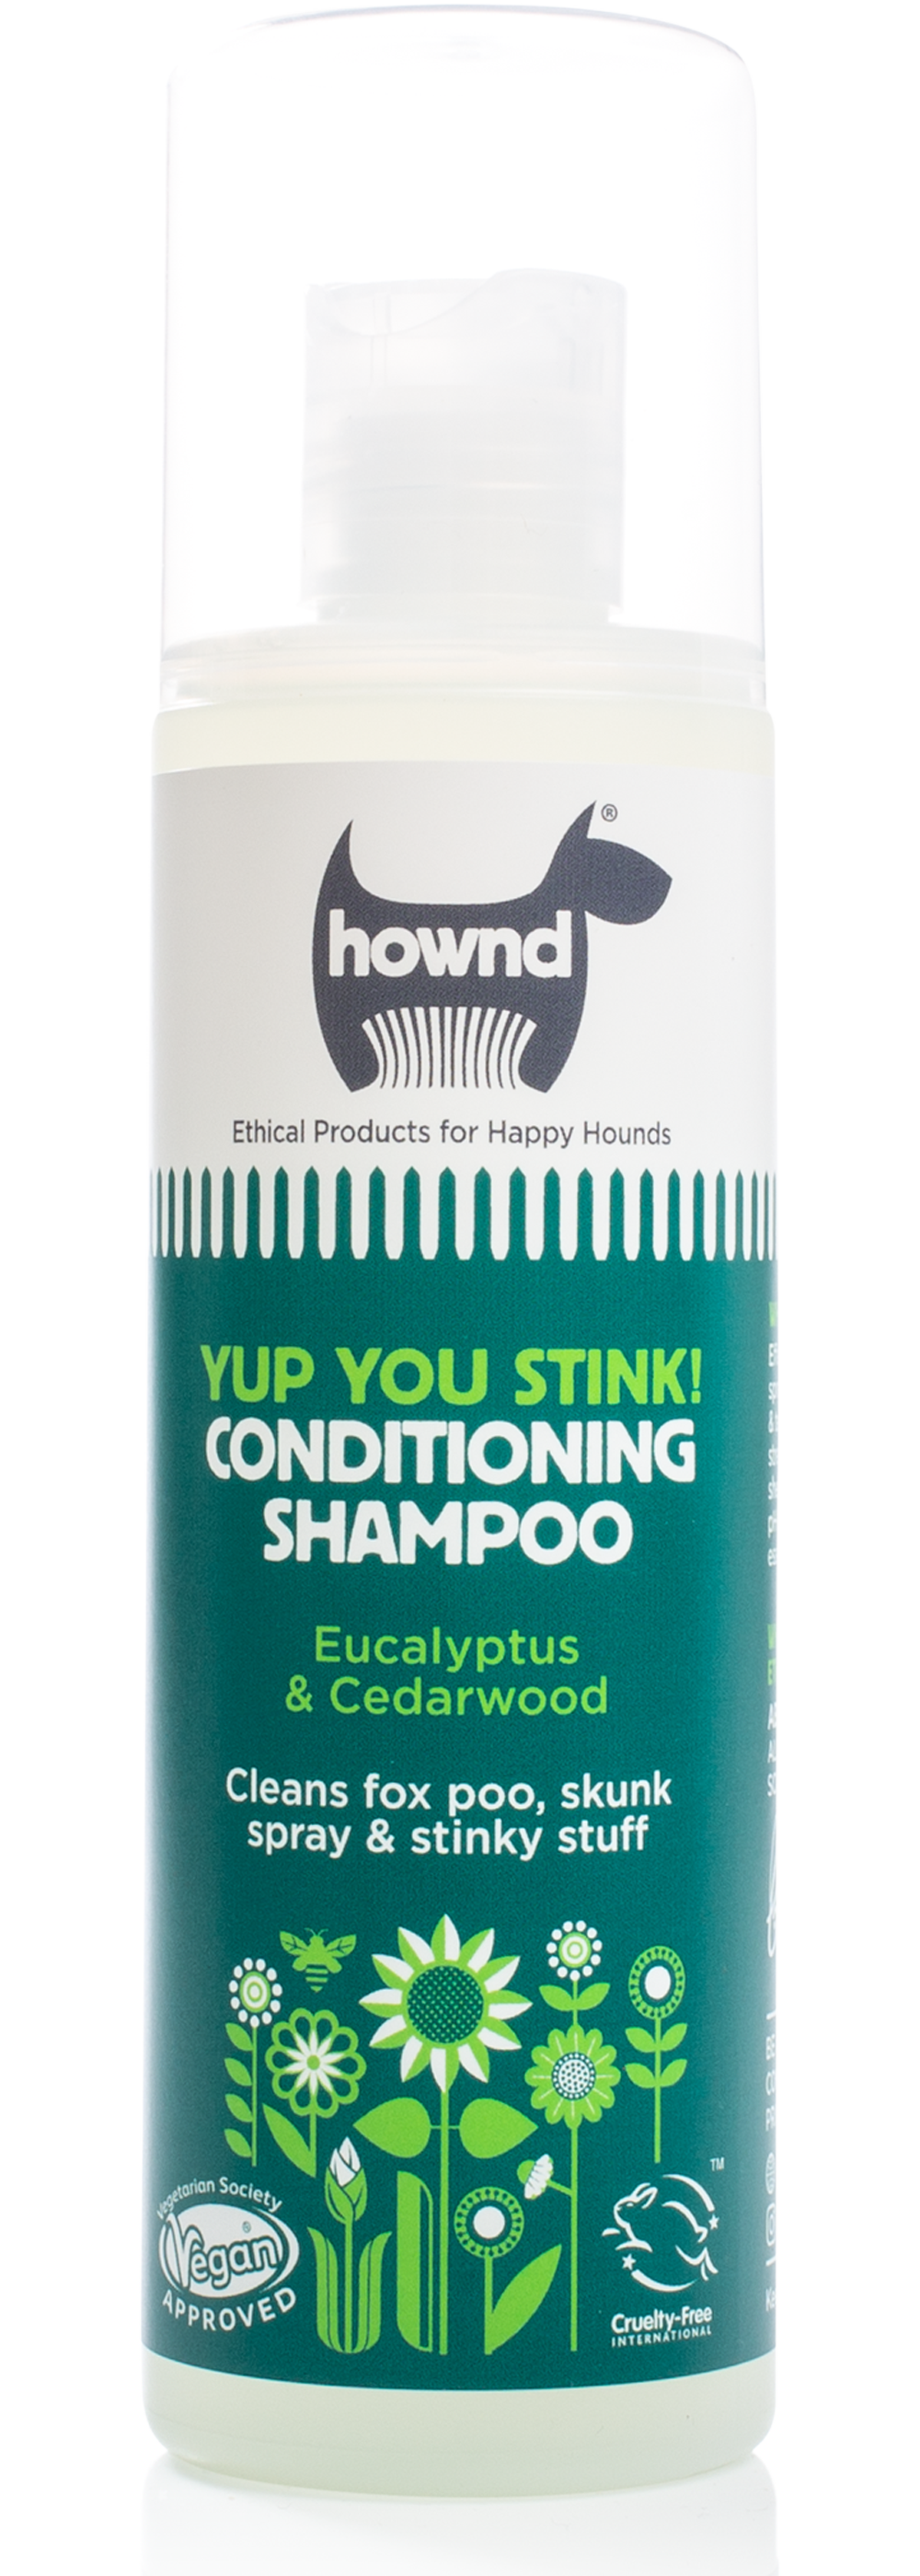 Yup, You Stink! Conditioning Shampoo